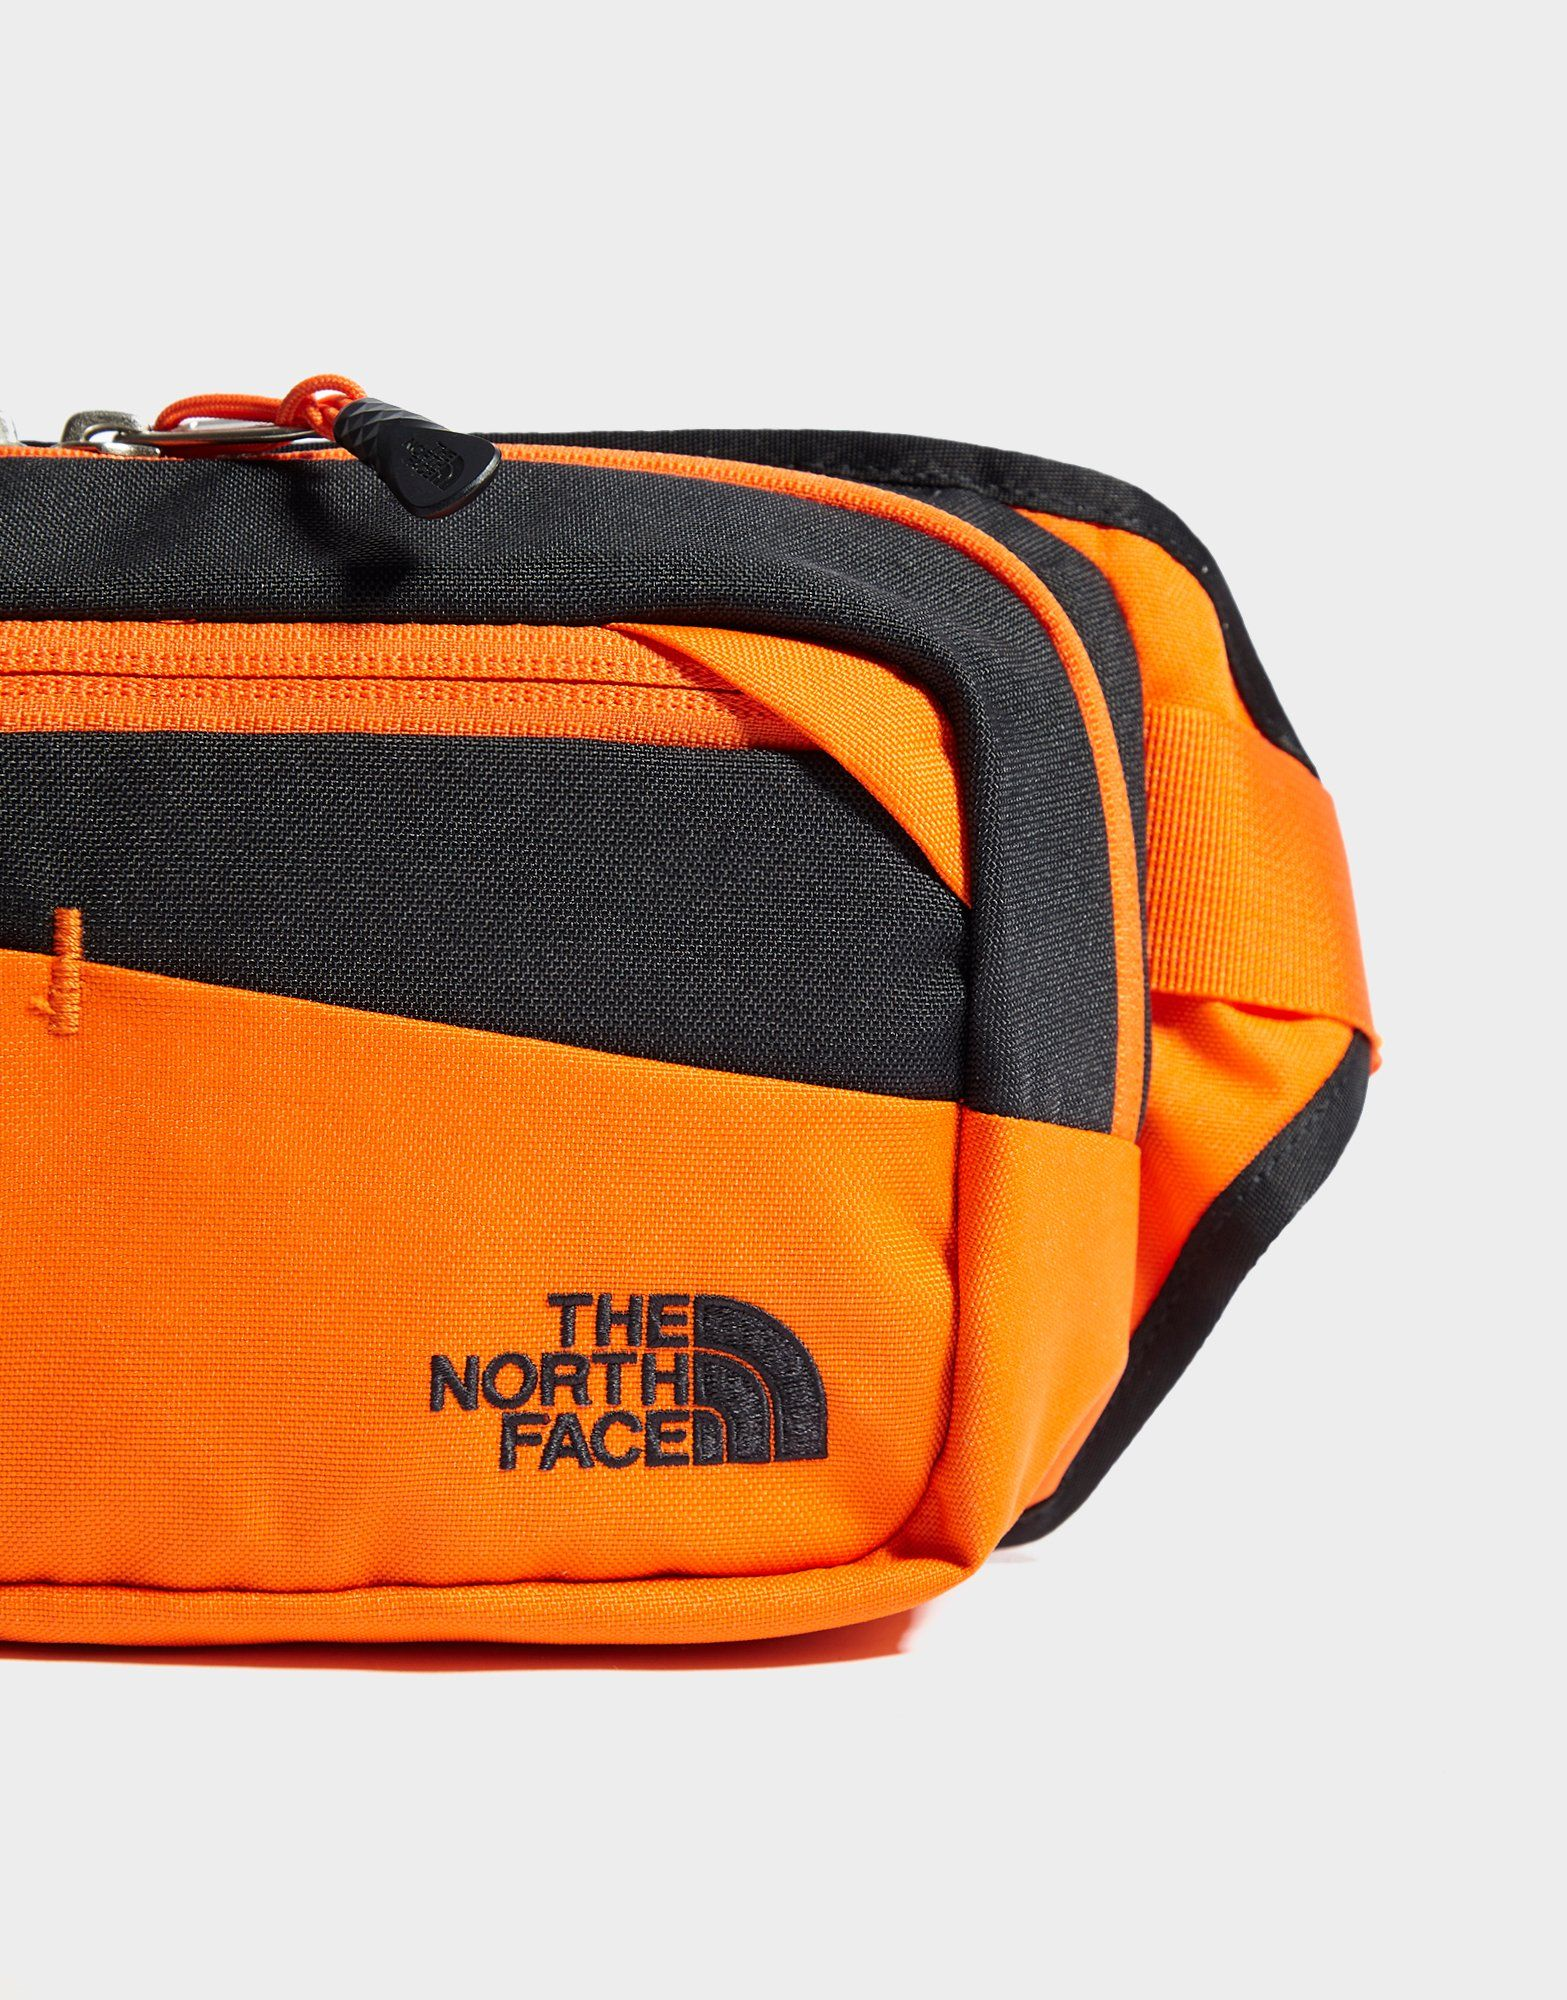 The North Face Banane